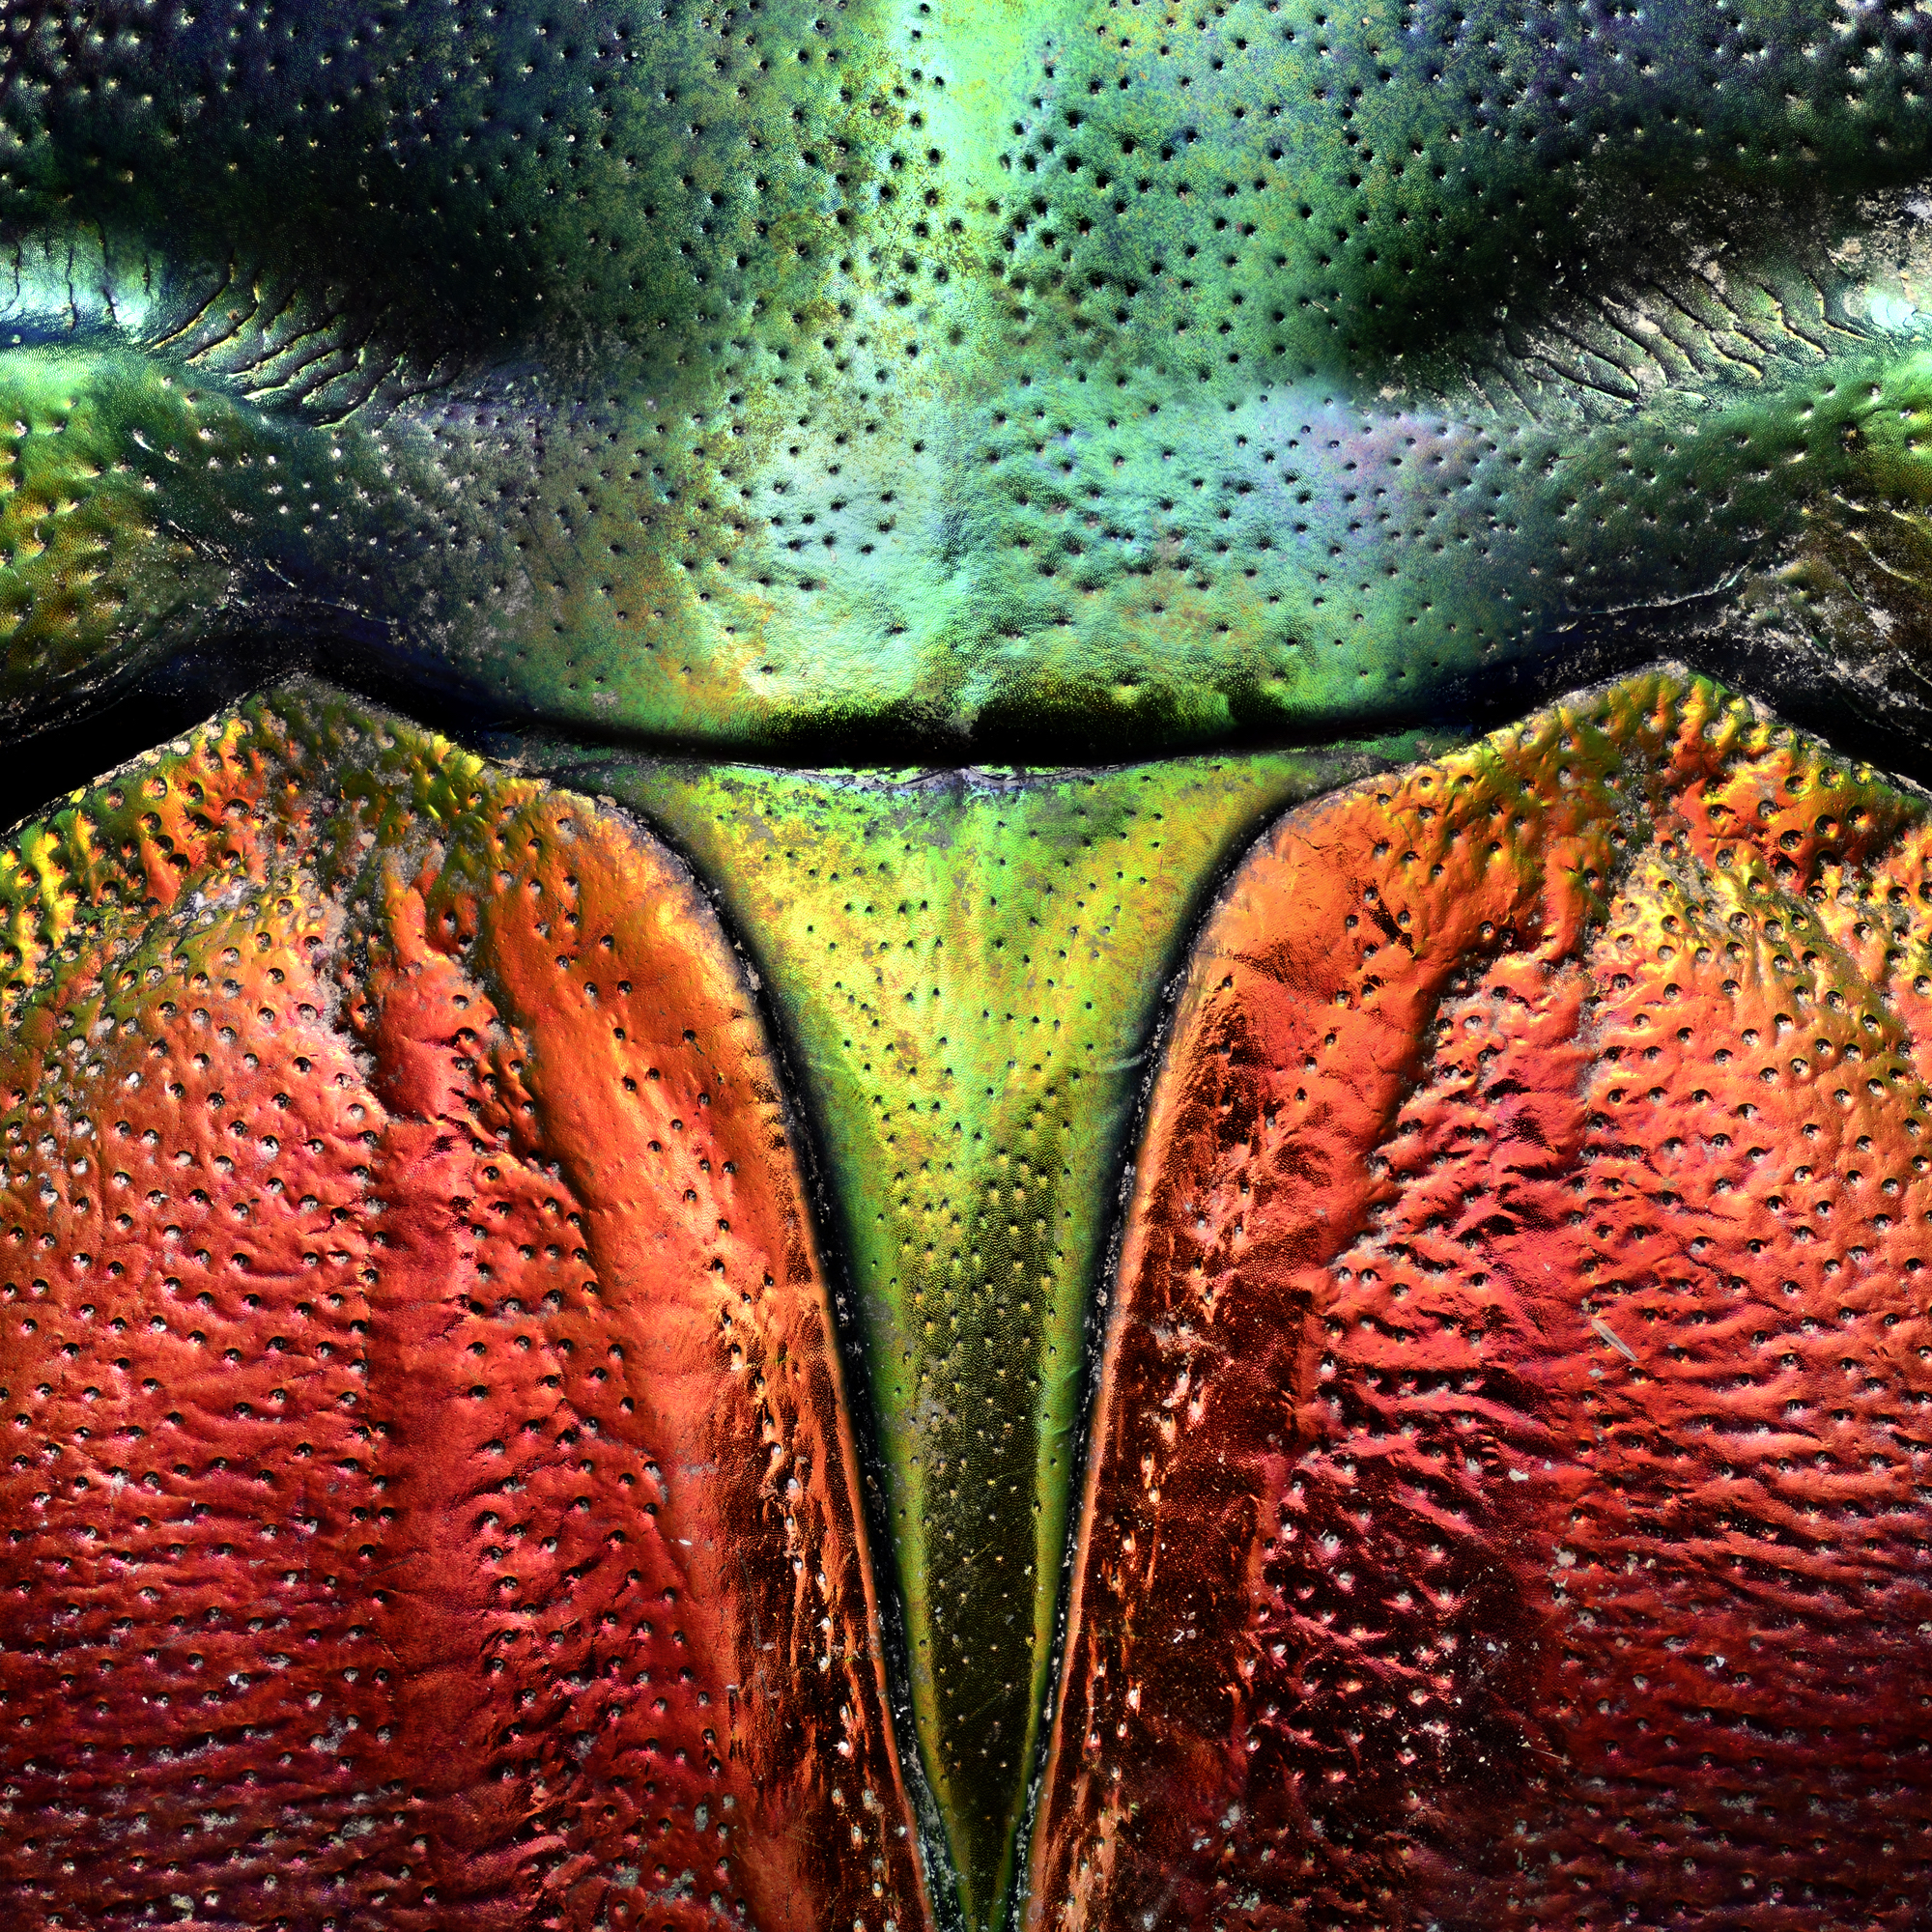 Detail of Tricolored Jewel Beetle